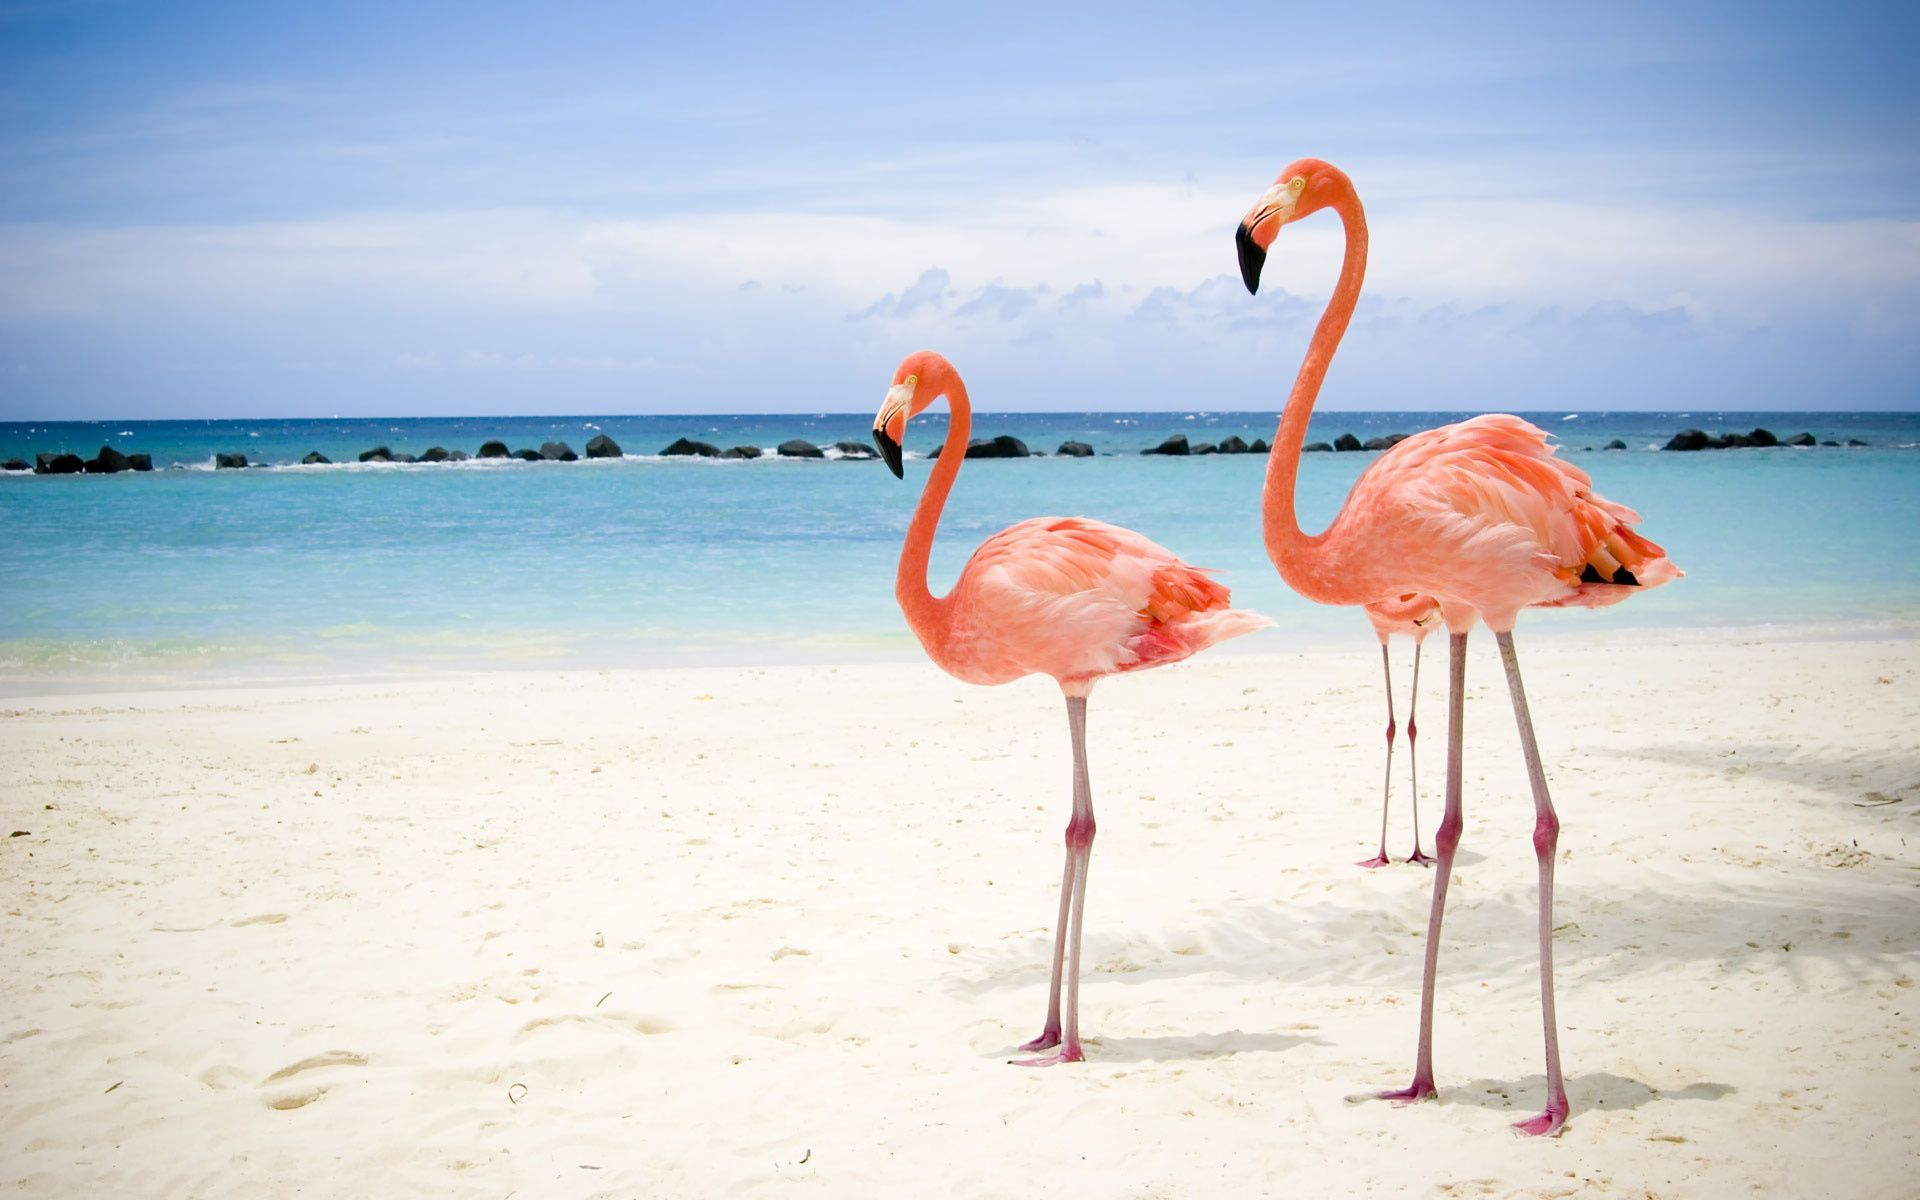 Holbox is home to thousands of flamingos thanks to its shallow